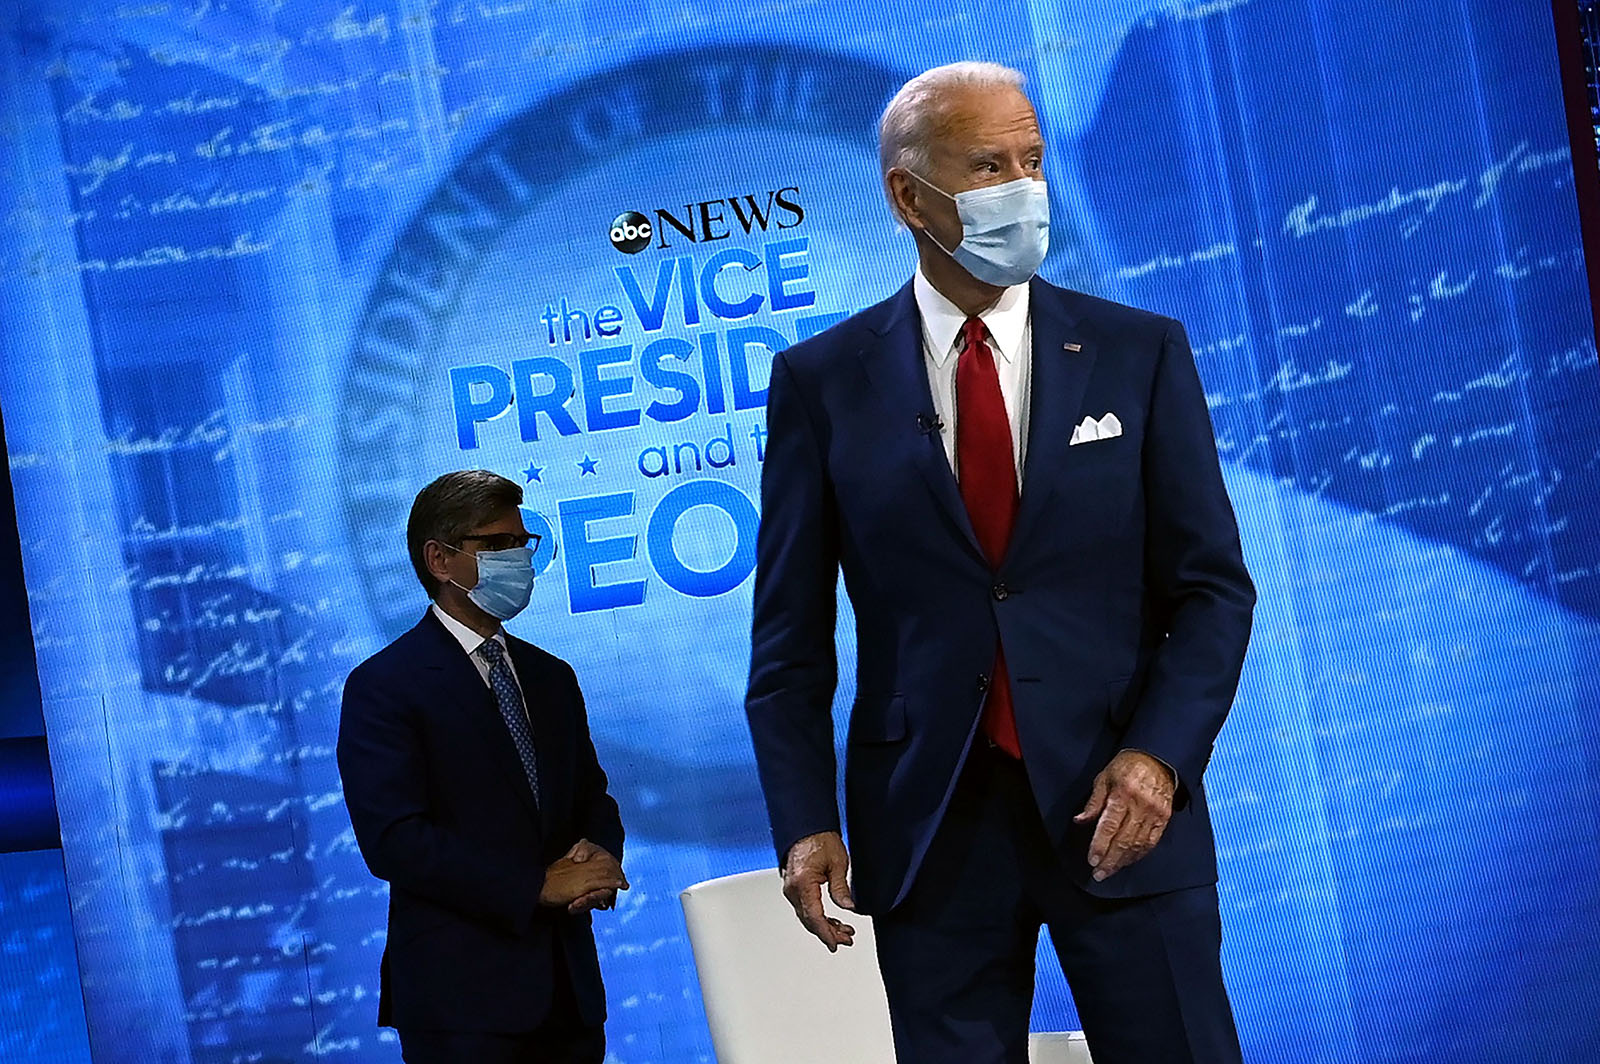 Democratic Presidential candidate Joe Biden arrive for an ABC News town hall event at the National Constitution Center in Philadelphia on Thursday.